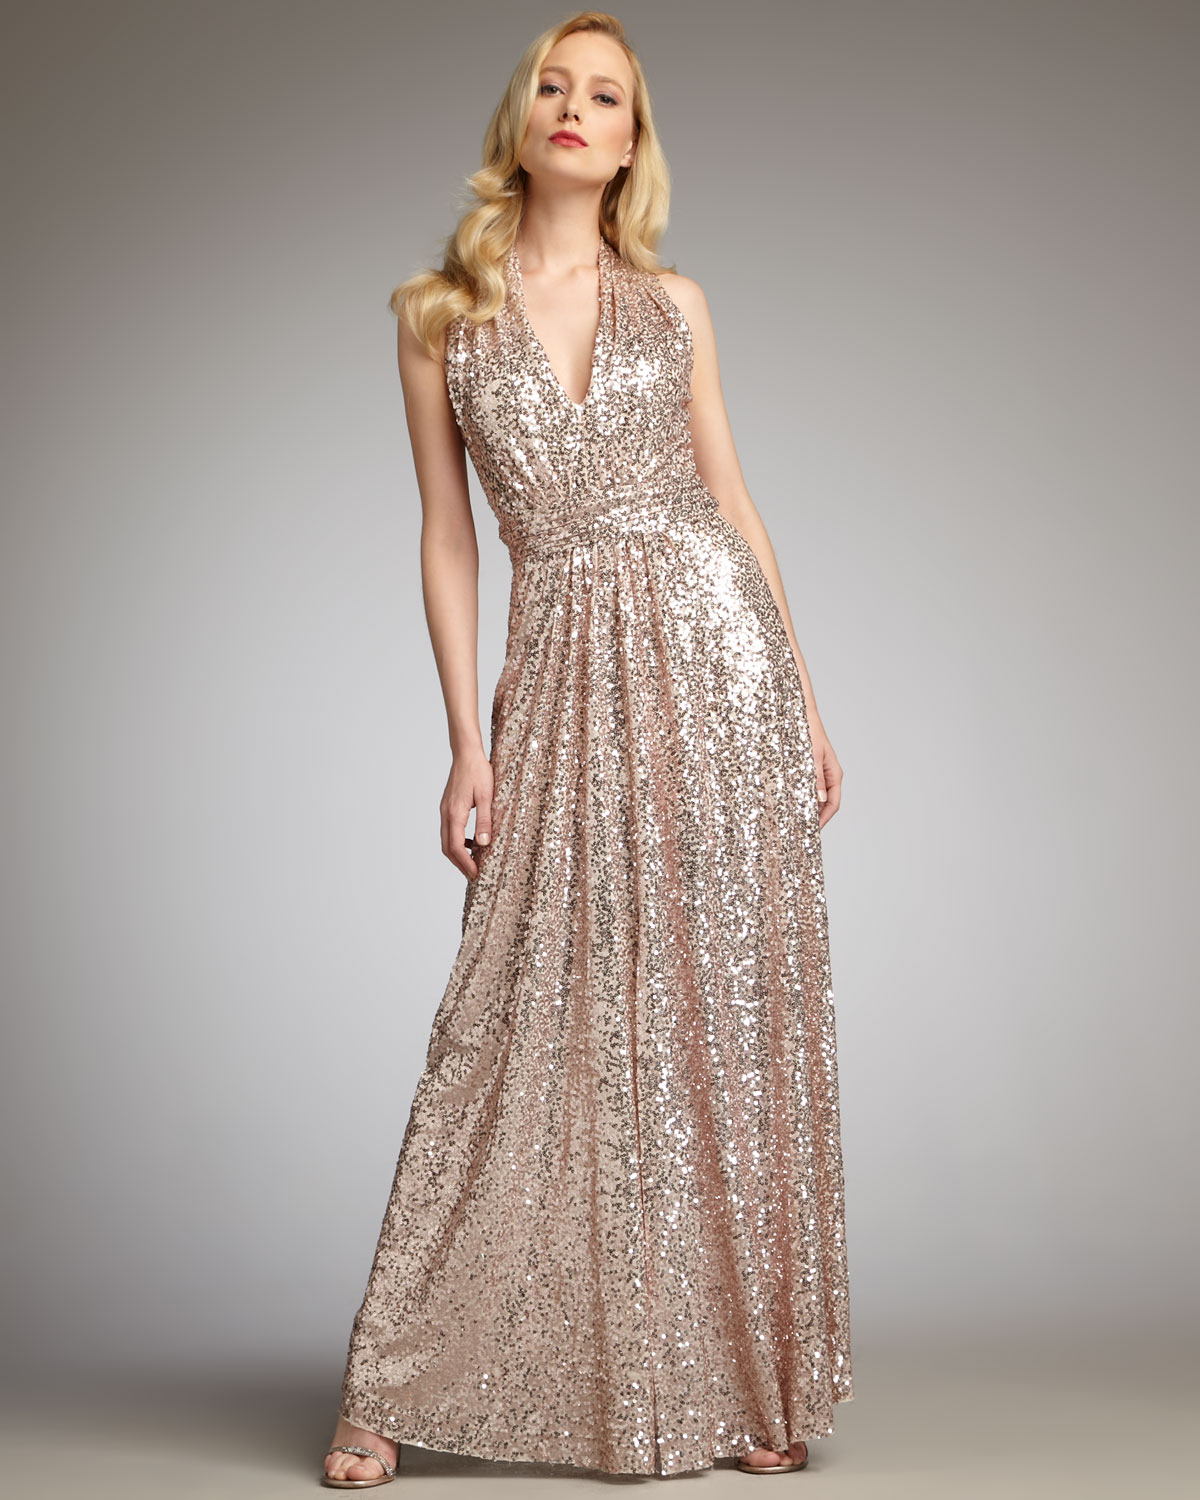 Lyst - Badgley Mischka Sequined Halter Gown in Metallic